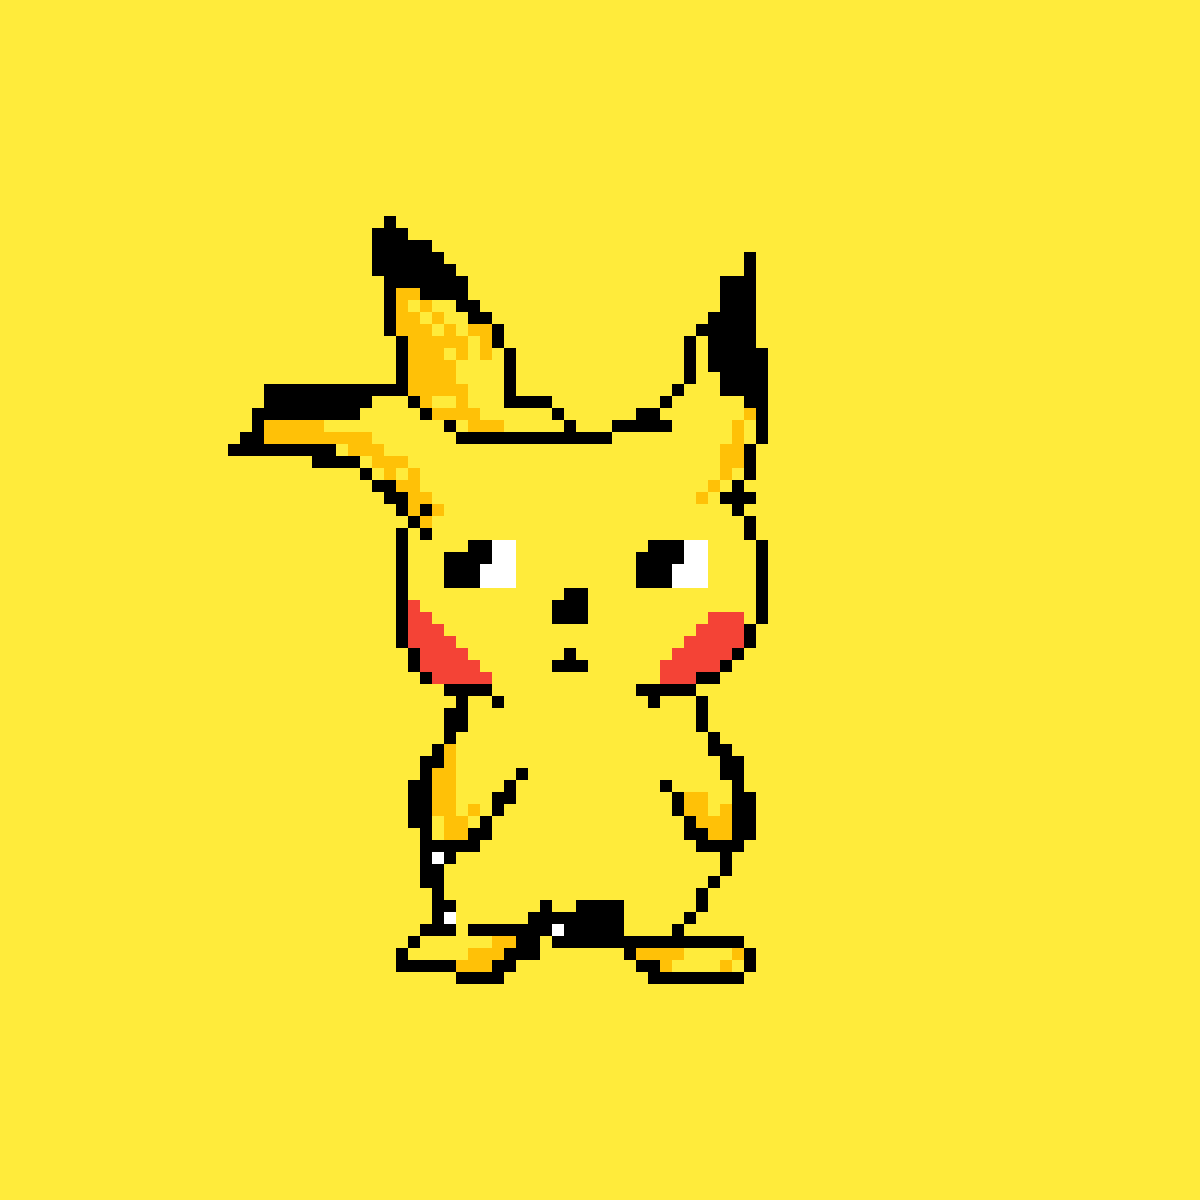 Pikachu by moonlanesan